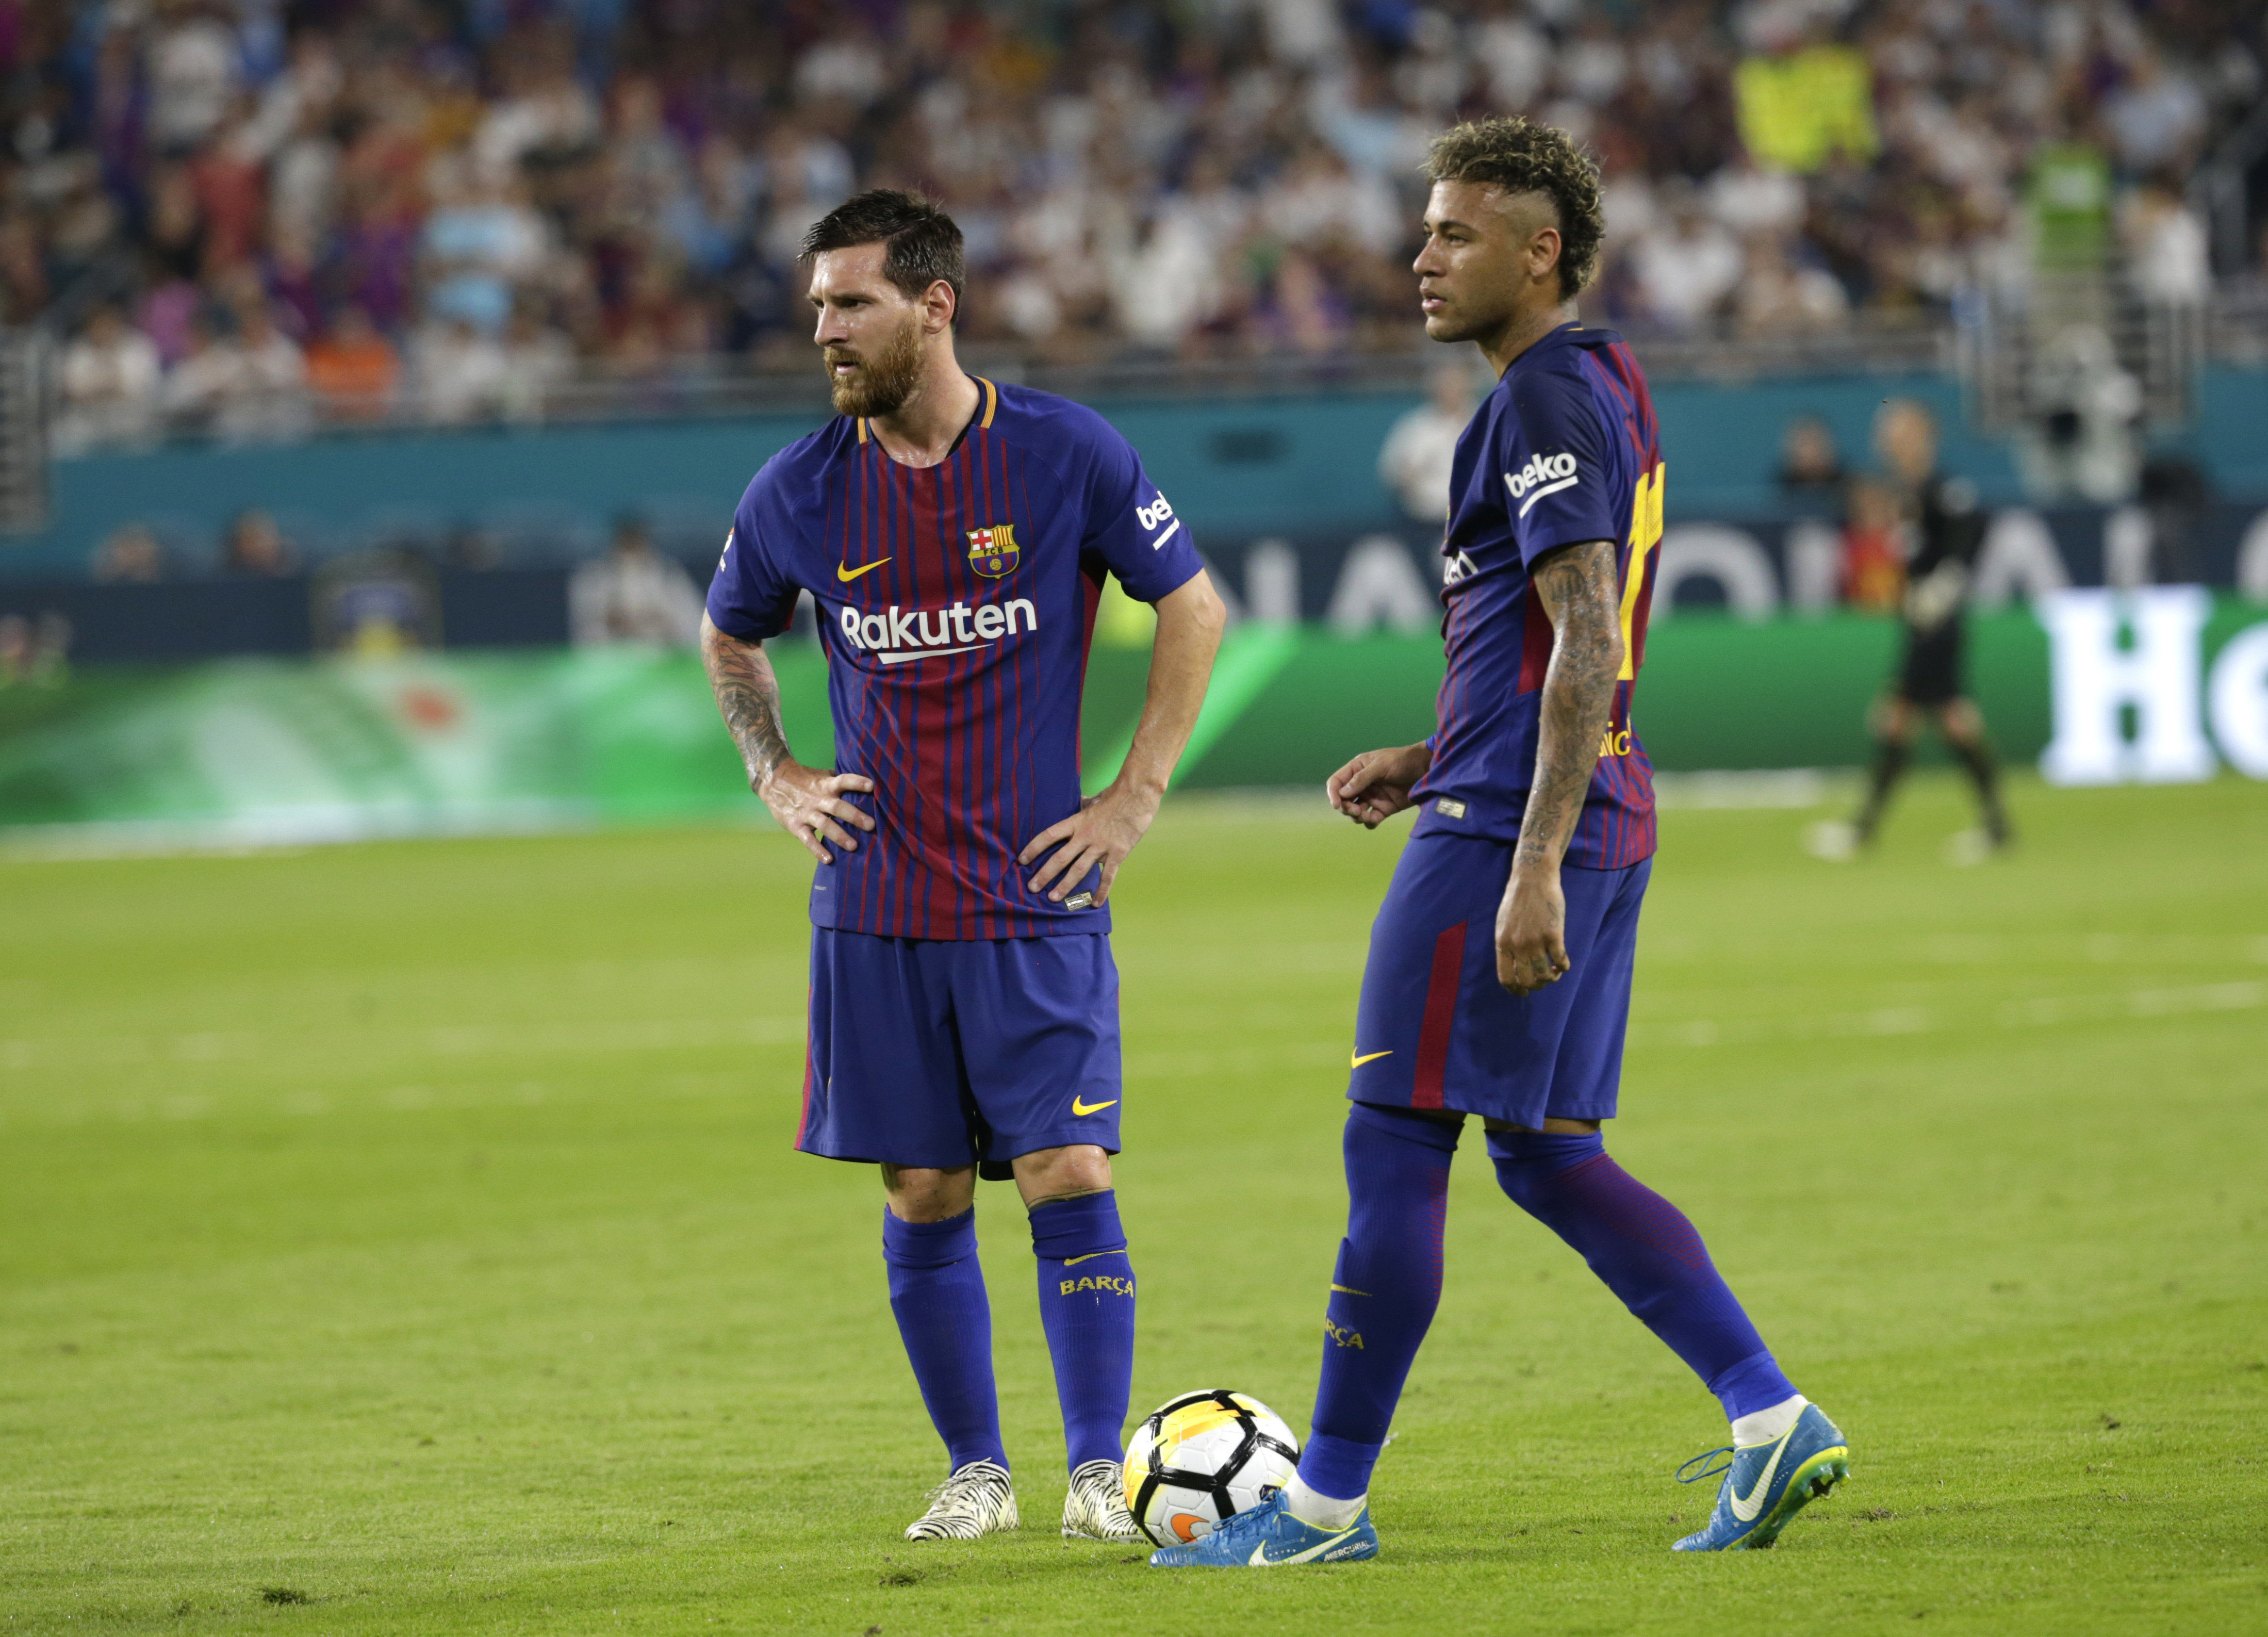 Barcelona's Lionel Messi, left, and Neymar, right, stand on the field during a break in the action during the first half of an International Champions Cup soccer match against Real Madrid, Saturday, July 29, 2017, in Miami Gardens, Fla.Barcelona's Lionel Messi, left, and Neymar, right, stand on the field during a break in the action during the first half of an International Champions Cup soccer match against Real Madrid, Saturday, July 29, 2017, in Miami Gardens, Fla.